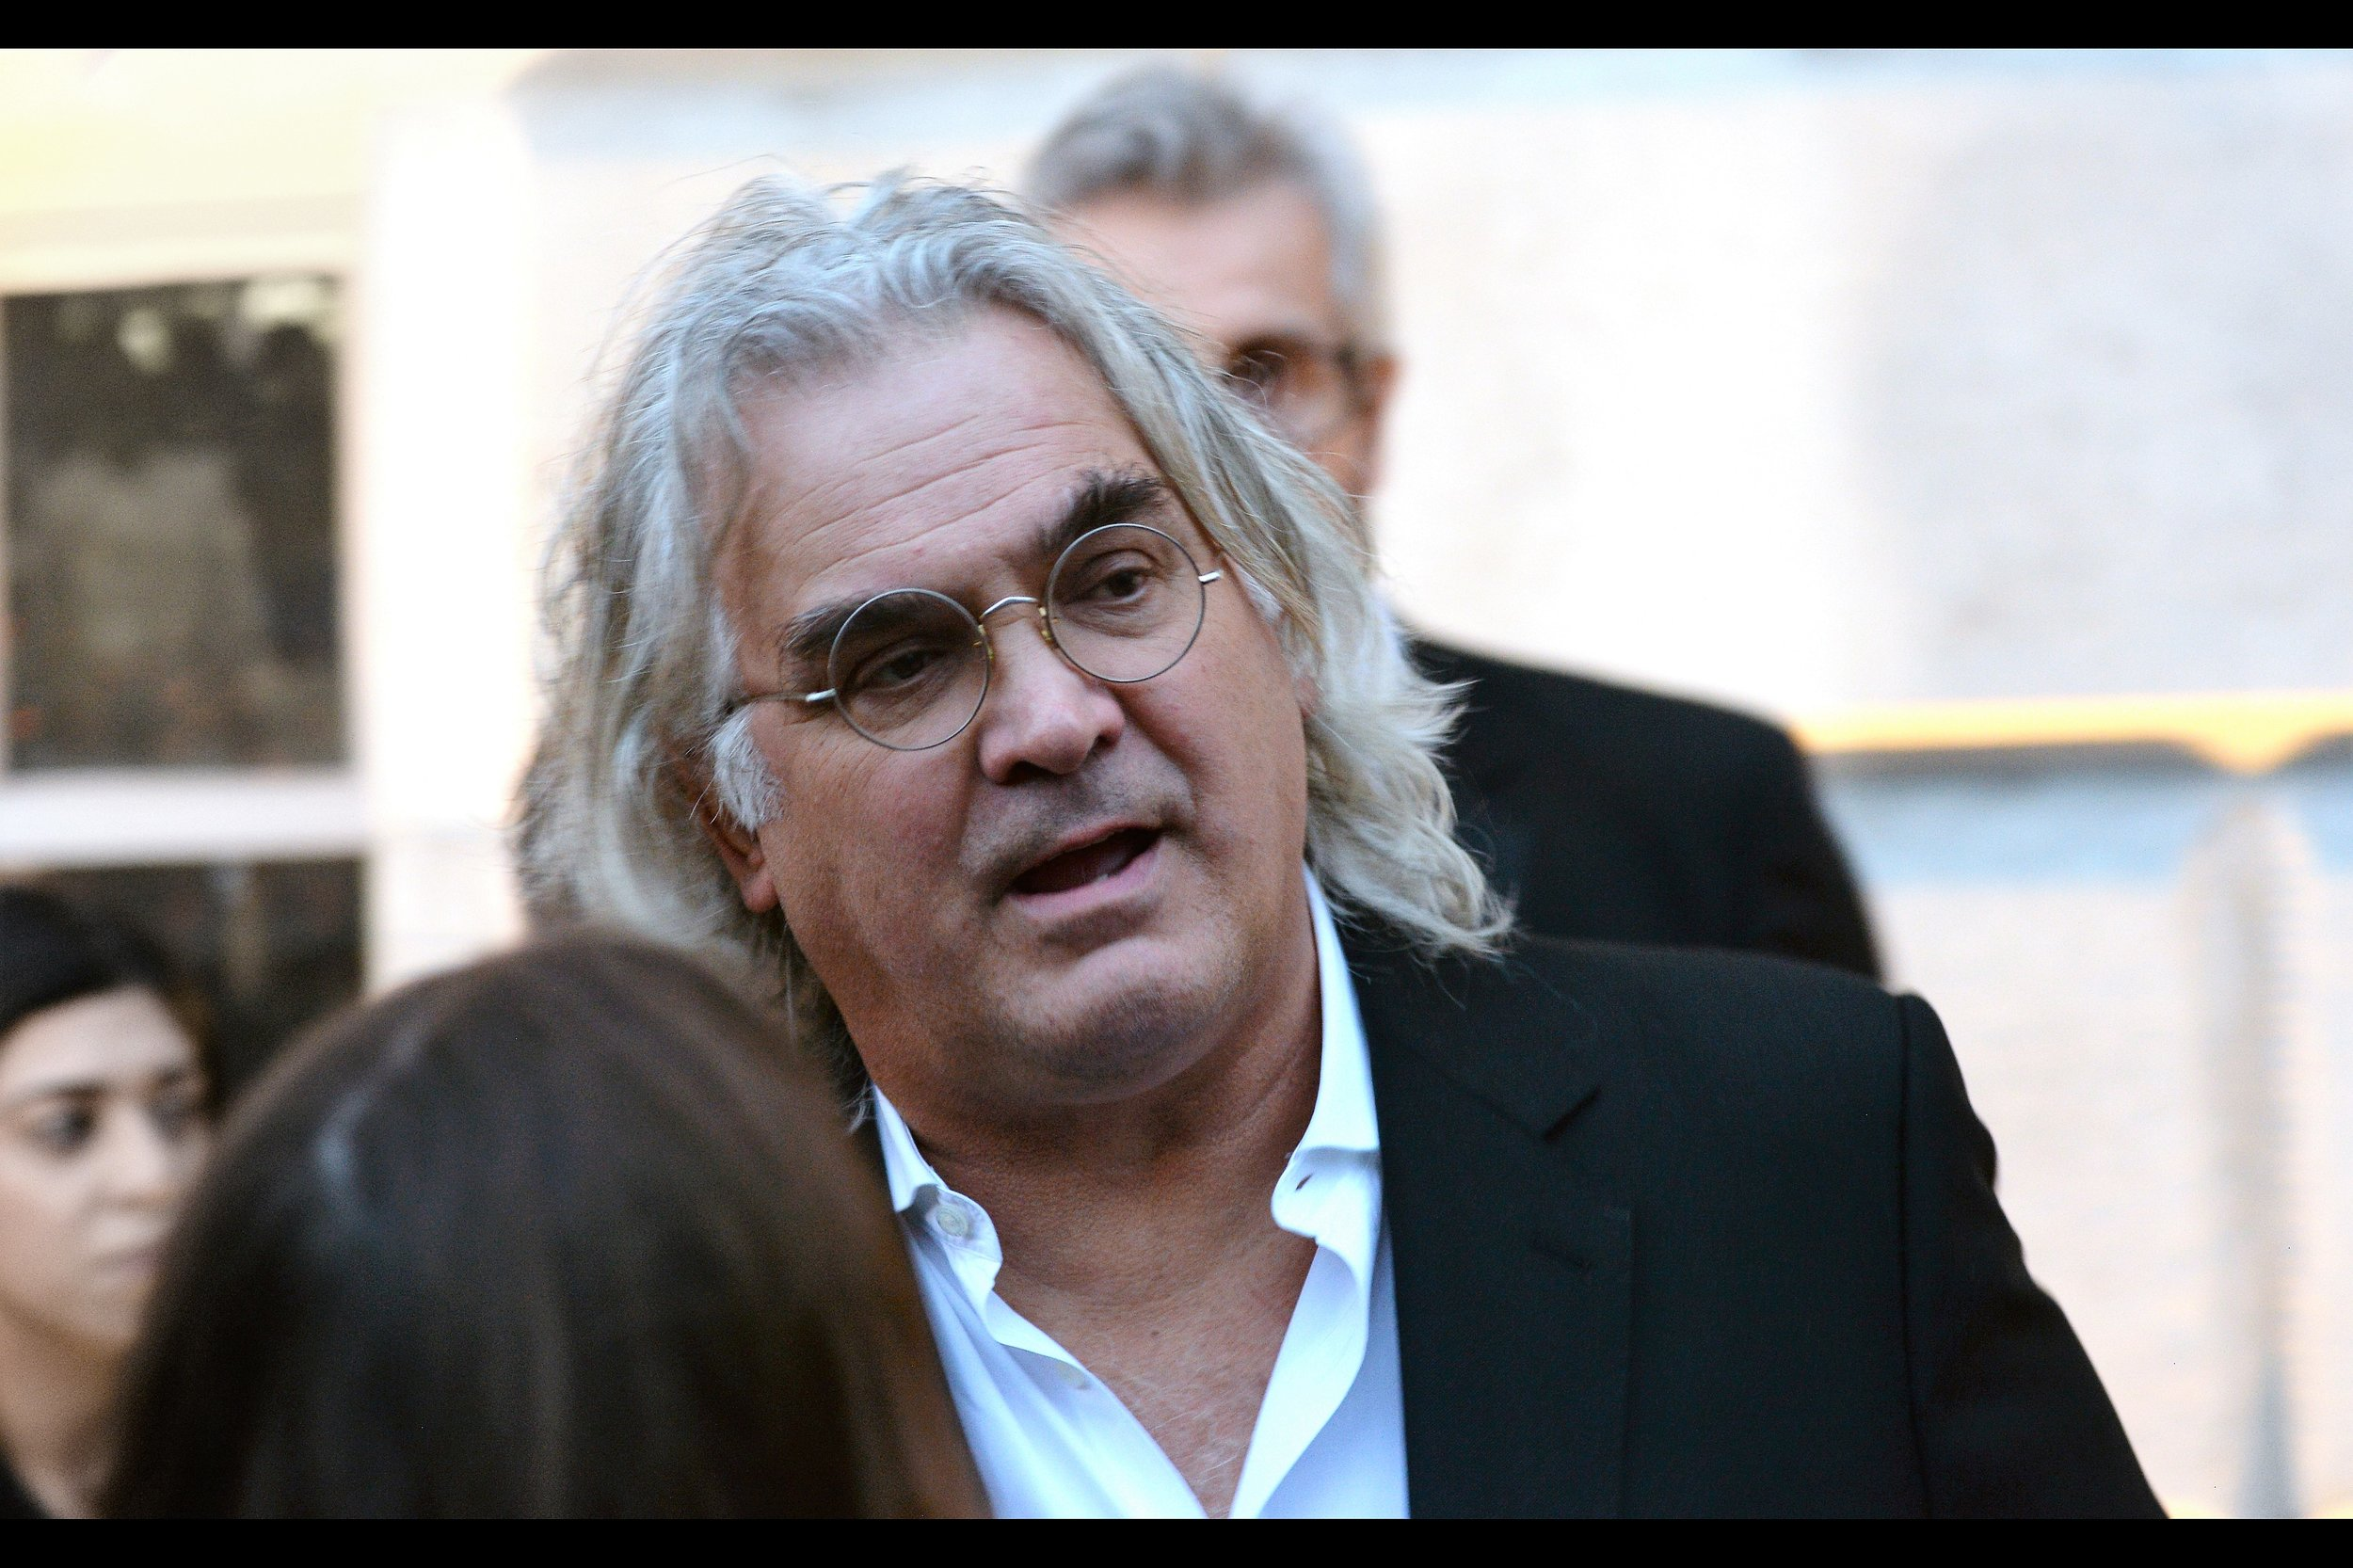 """What's """"Untitled Paul Greengrass Project"""" all about? Well... you'd have to ask the guys at imdb.com - they're the one who decided to call it that as a pet name"""""""